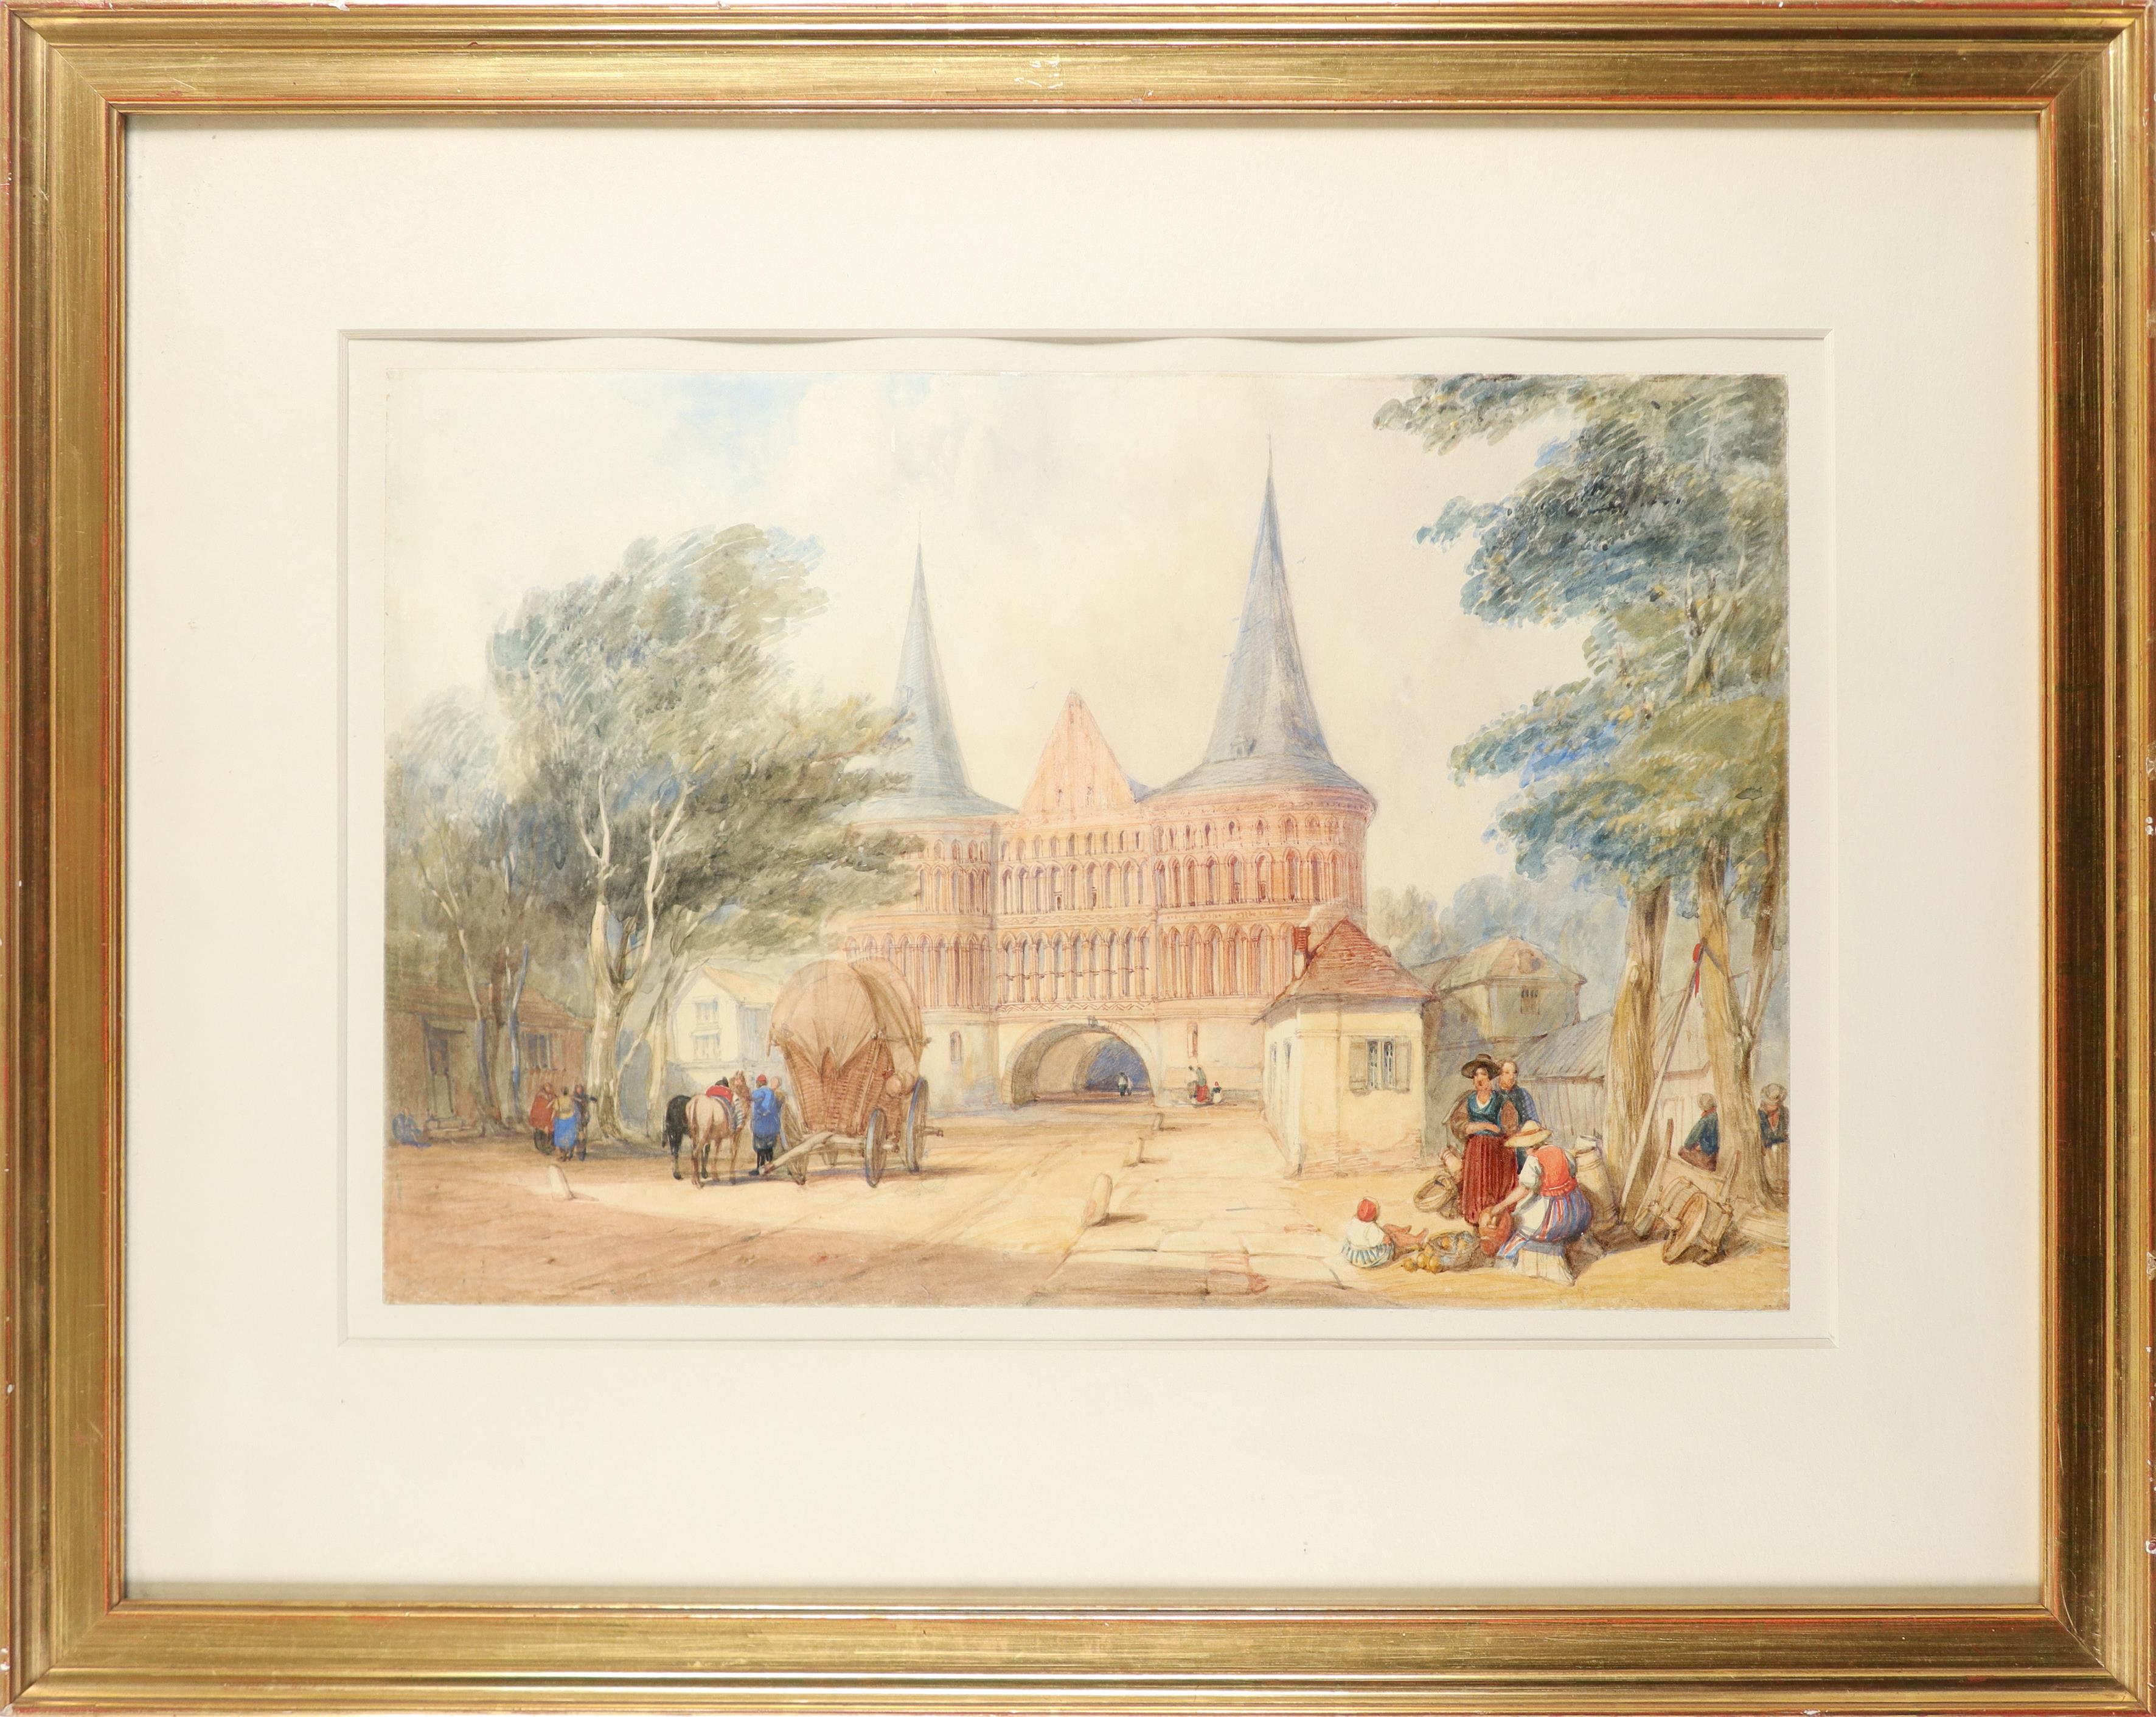 Alfred Gomersal Vickers (1810-1837) The Holsten Gate, Lübeck Watercolour heightened with - Image 2 of 3